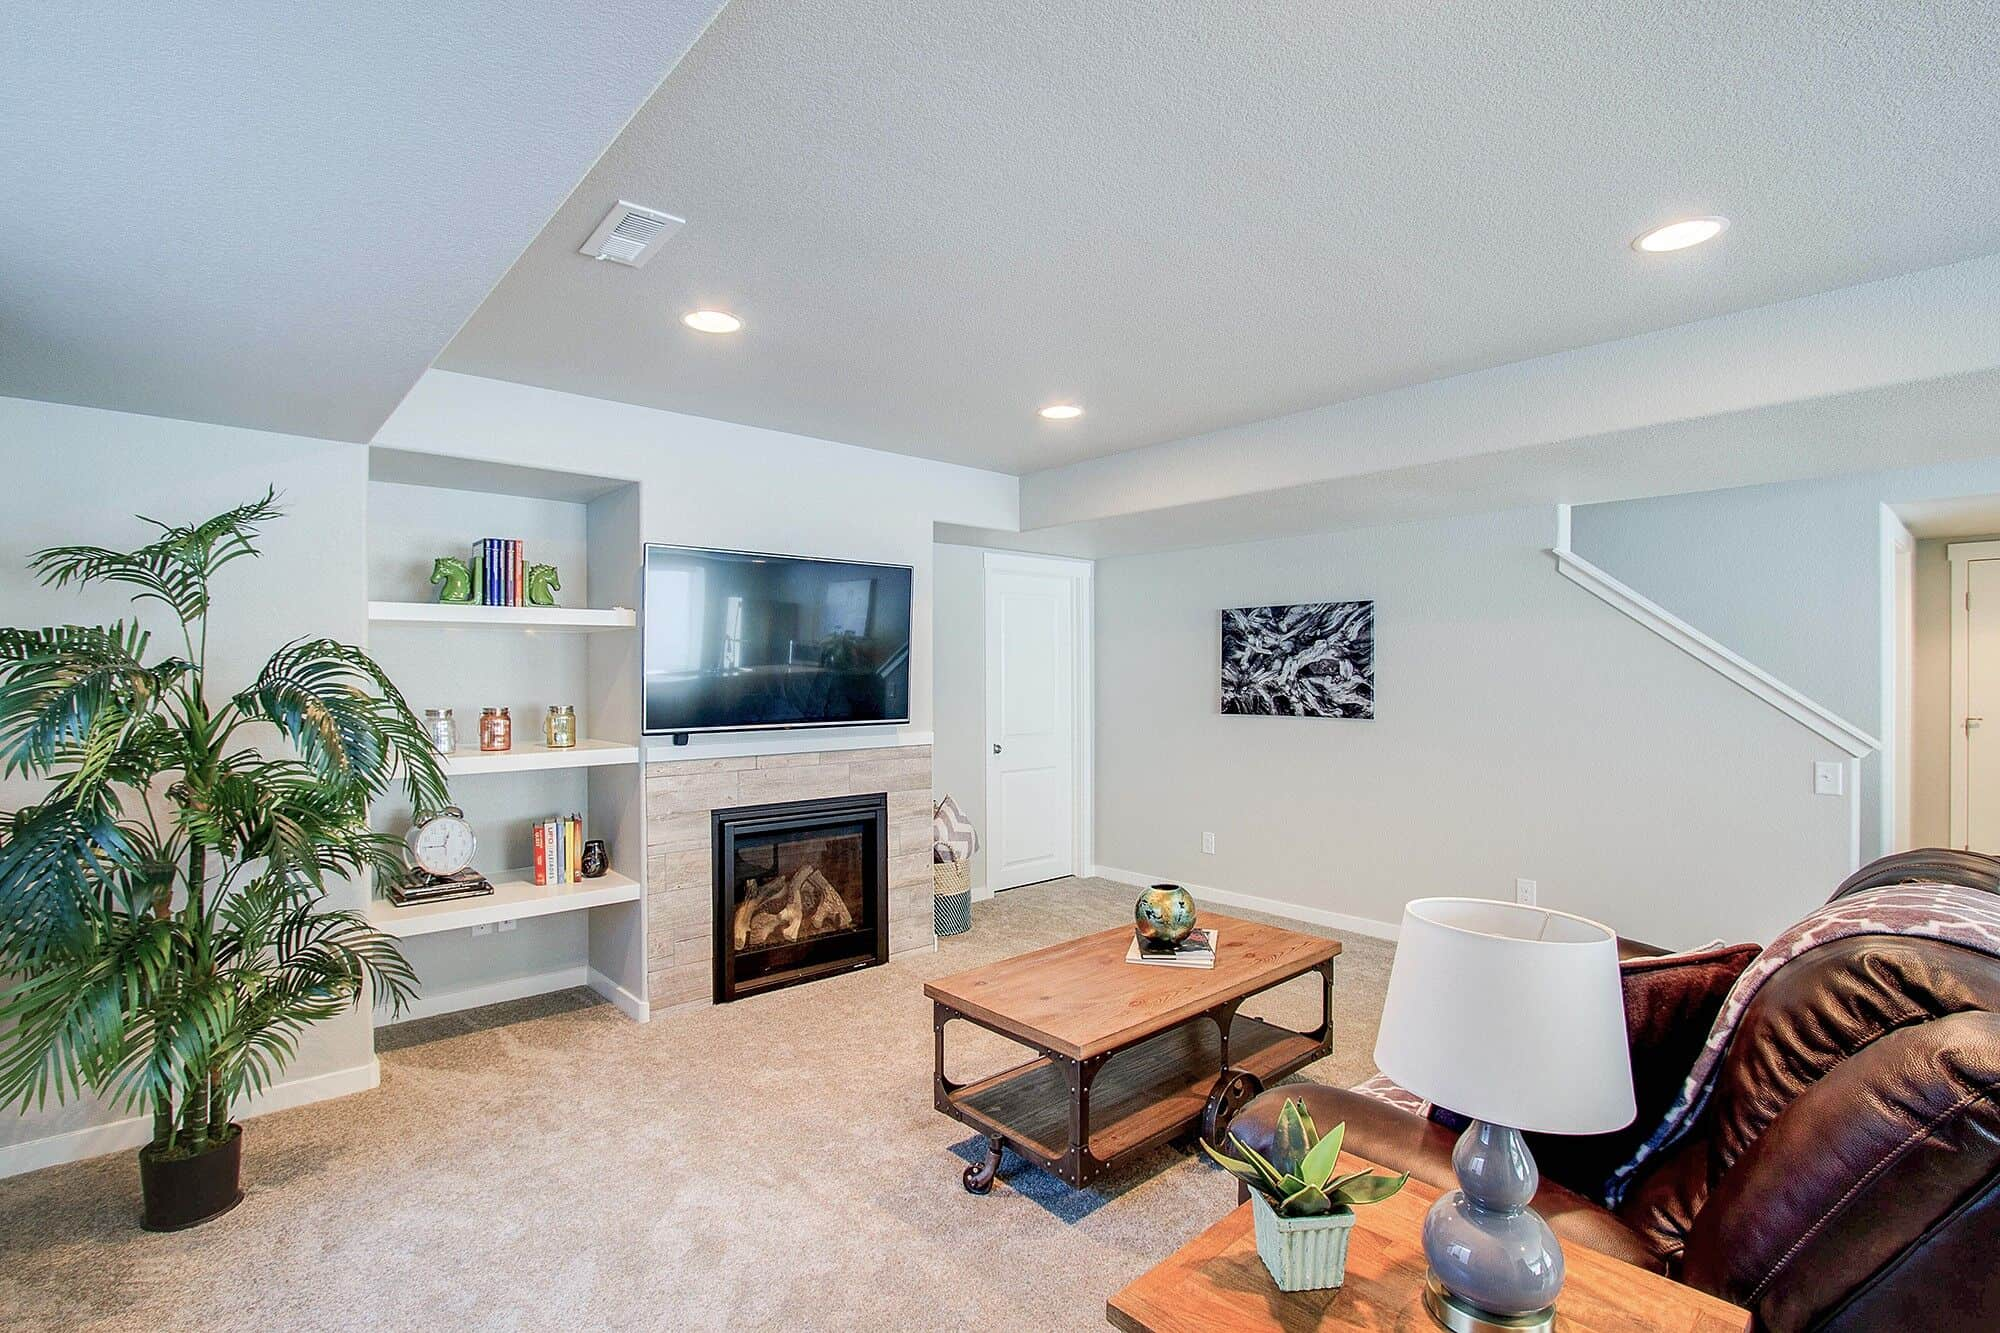 Rec Room with Fireplace and Built-In Shelves